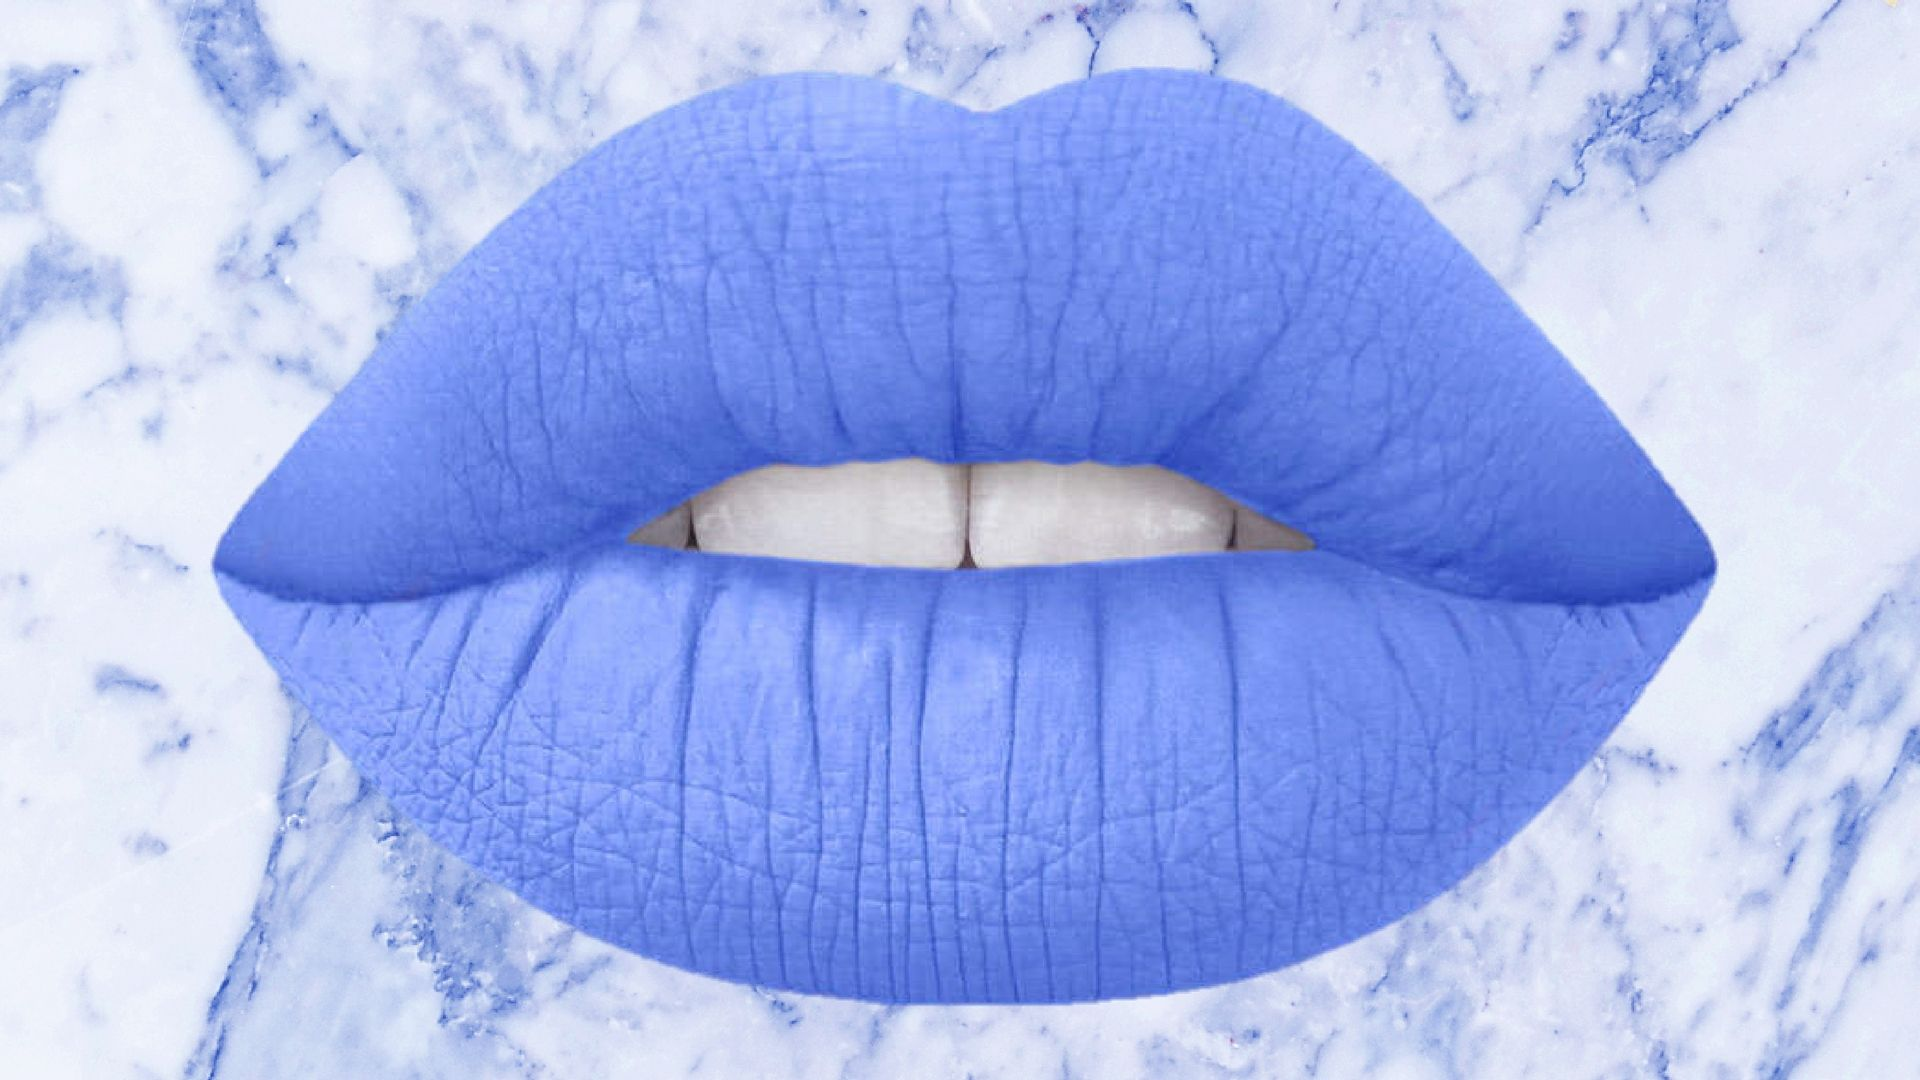 Blue Marble Lips Wallpaper #lipswallpaper